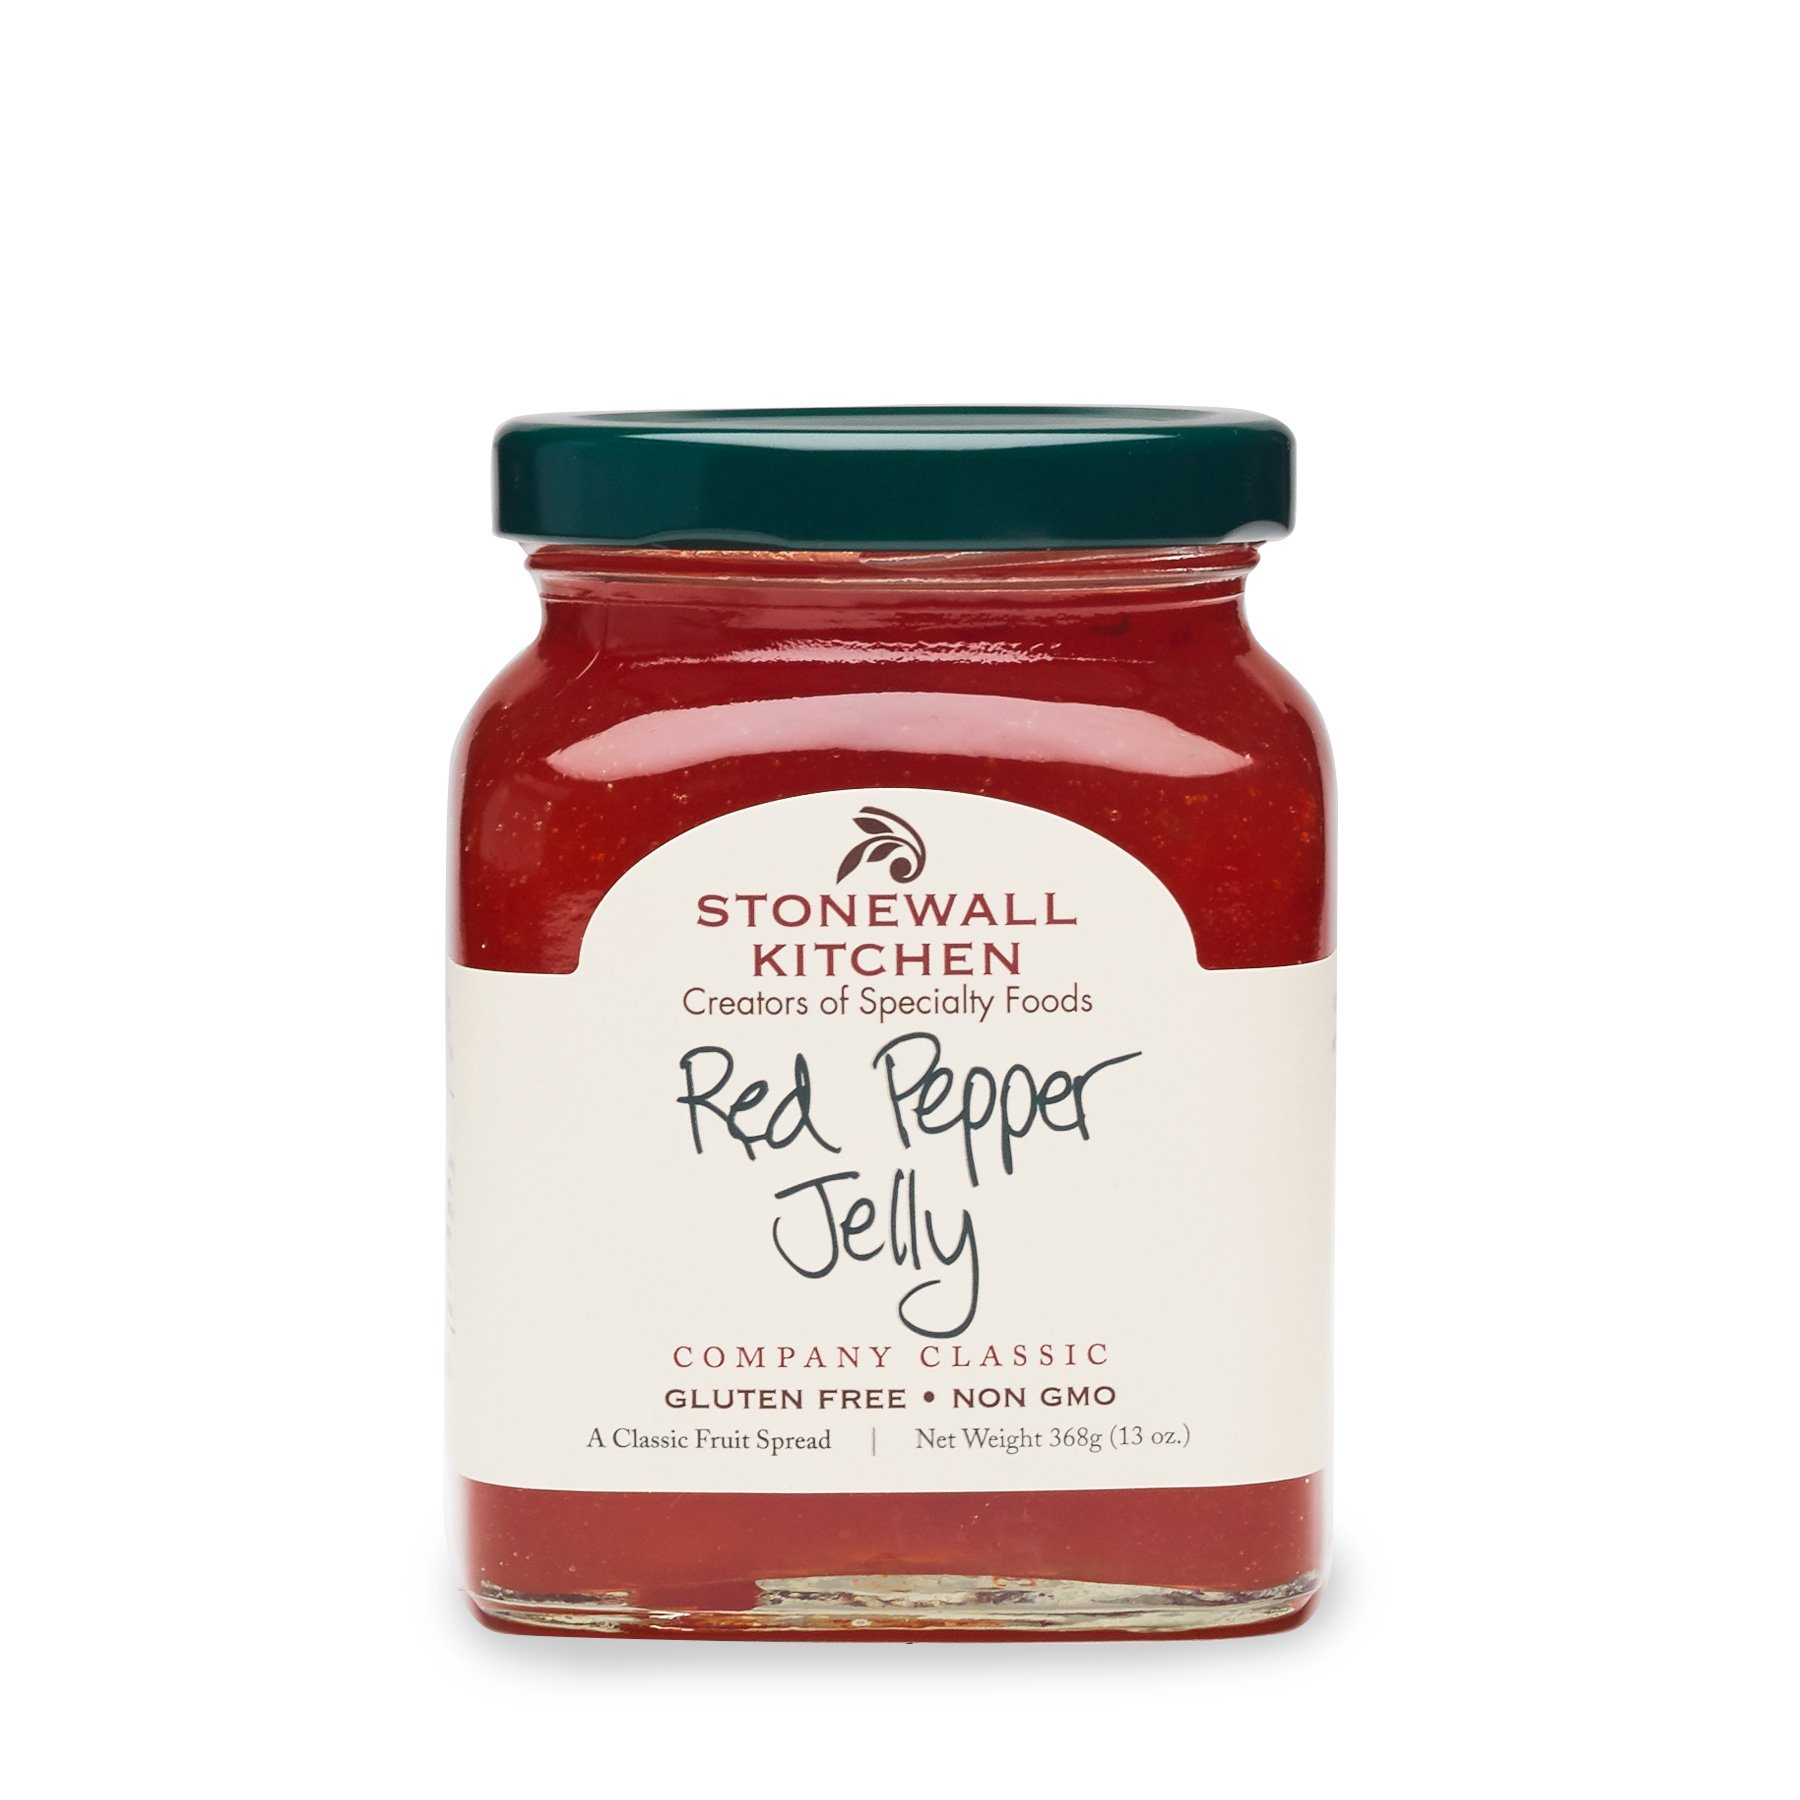 Stonewall Kitchen Red Pepper Jelly Reviews